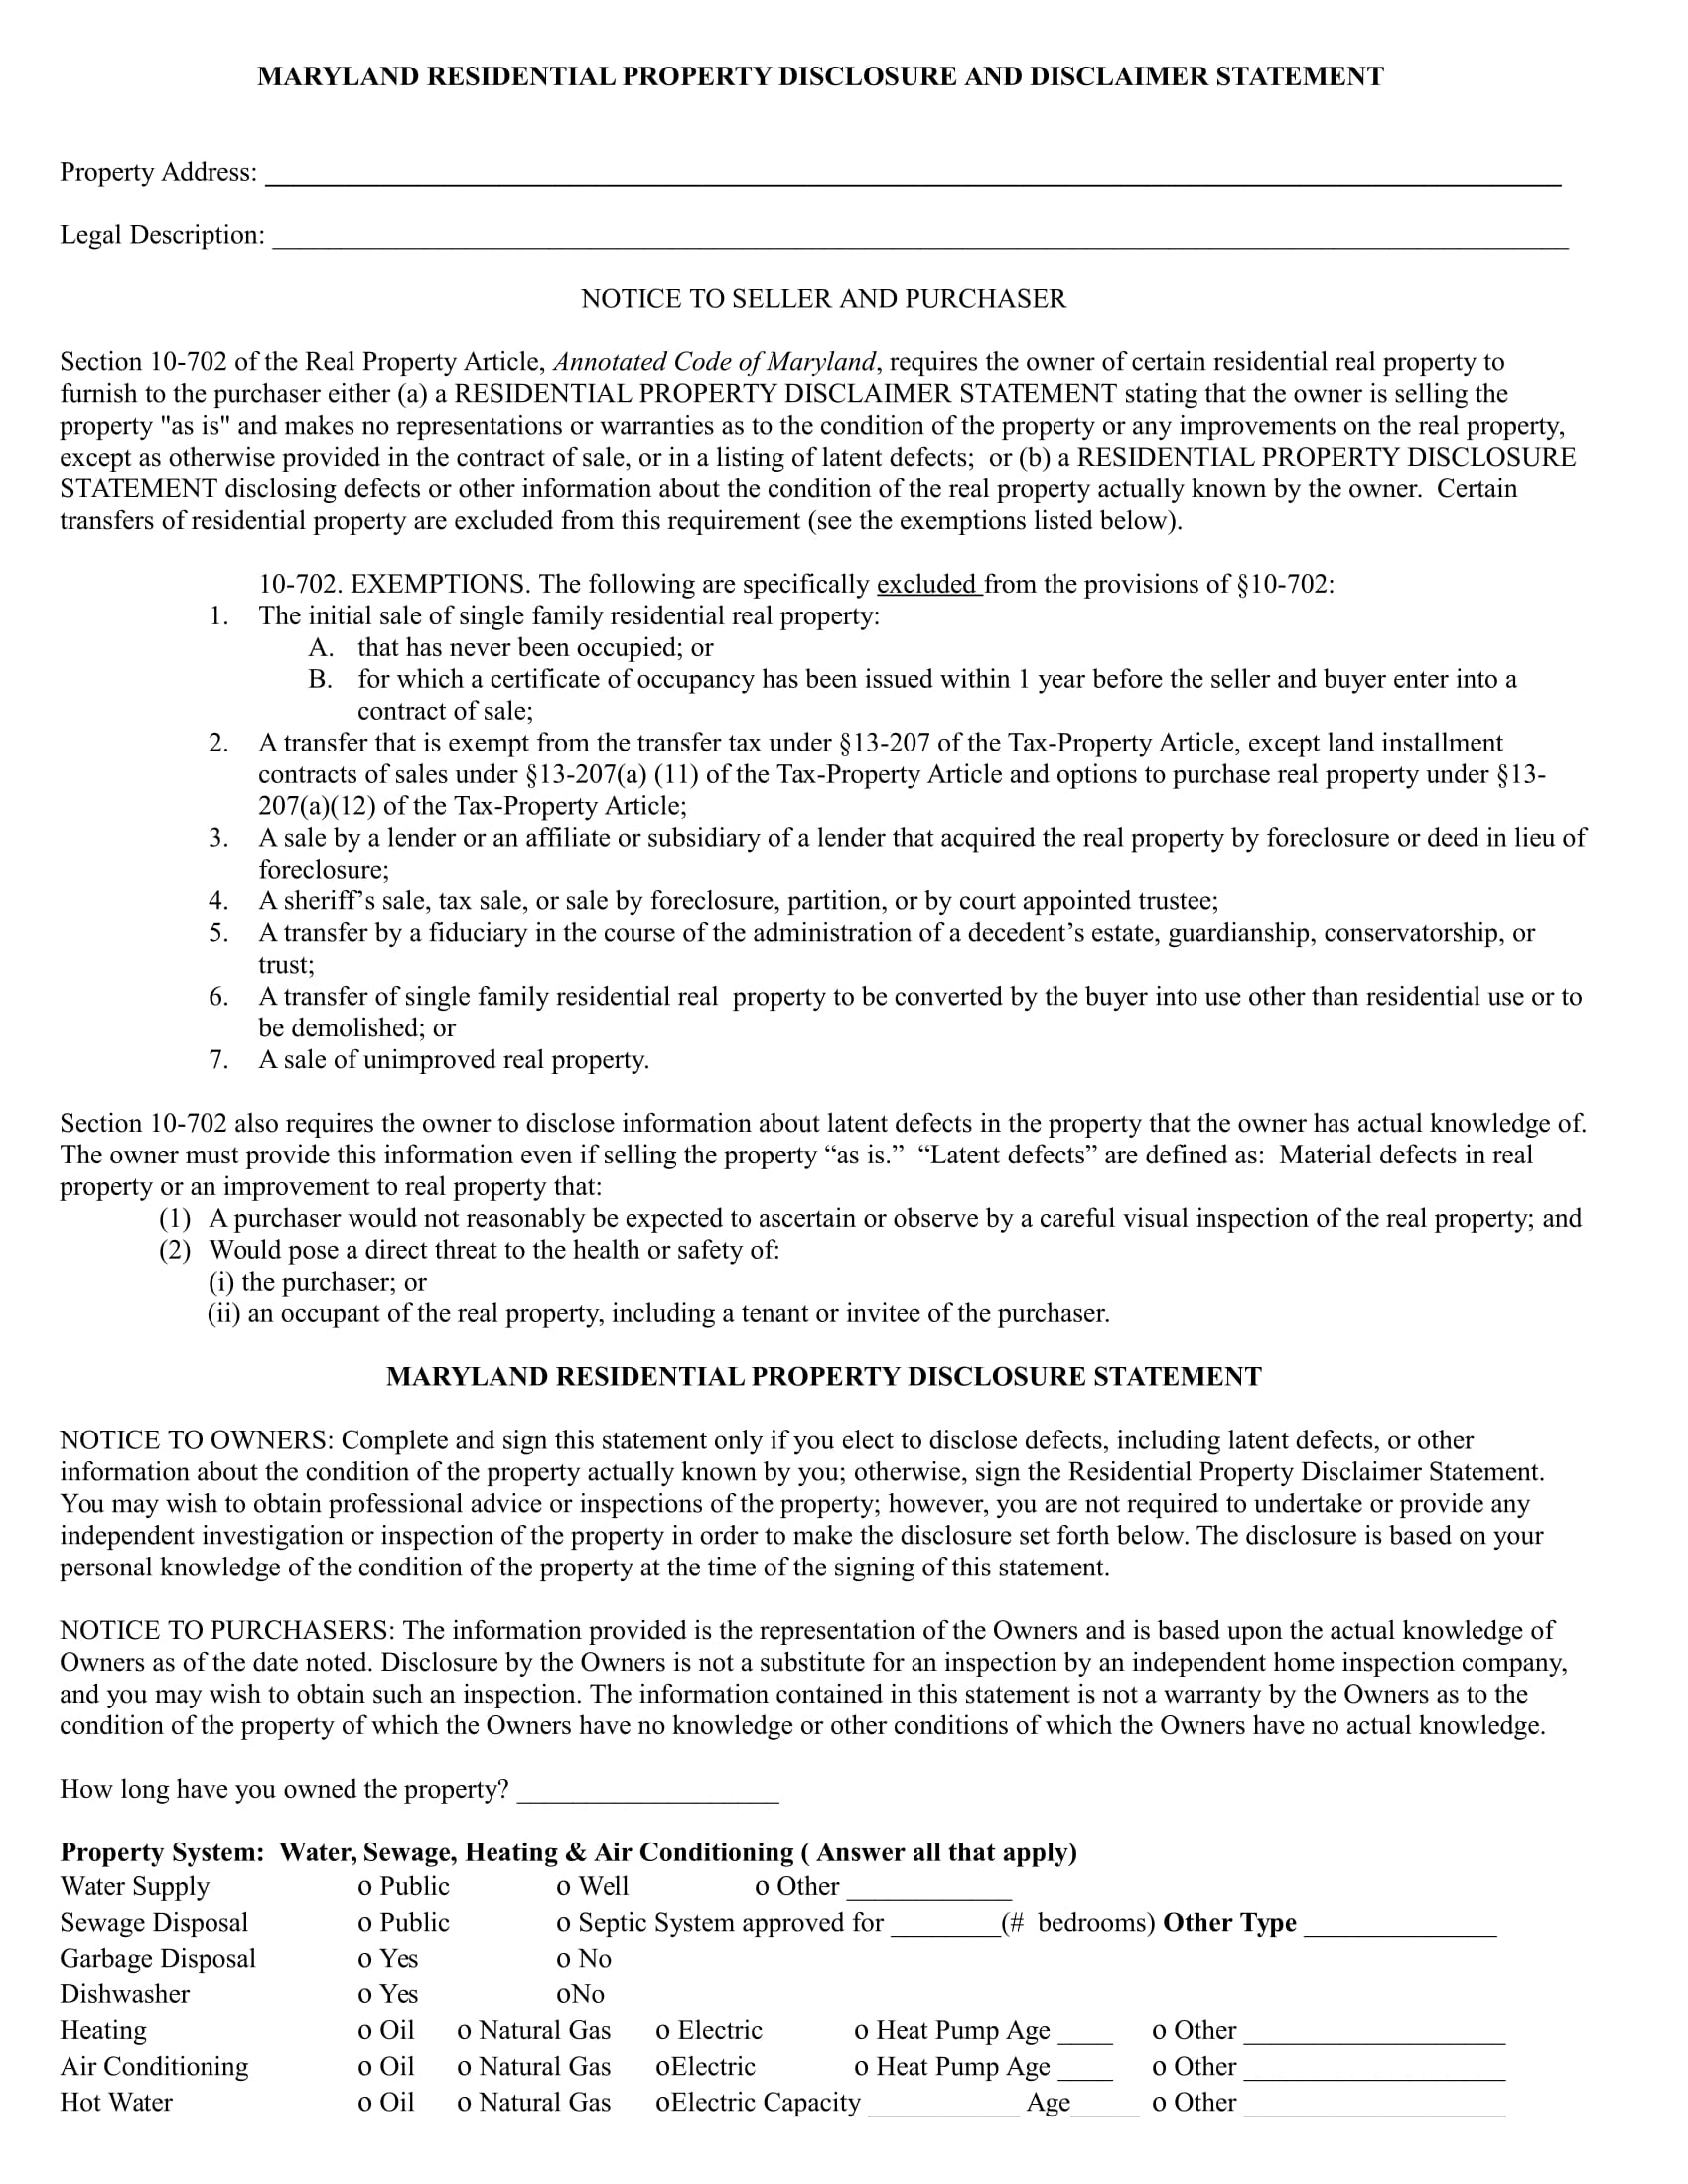 residential property disclosure statement form 1